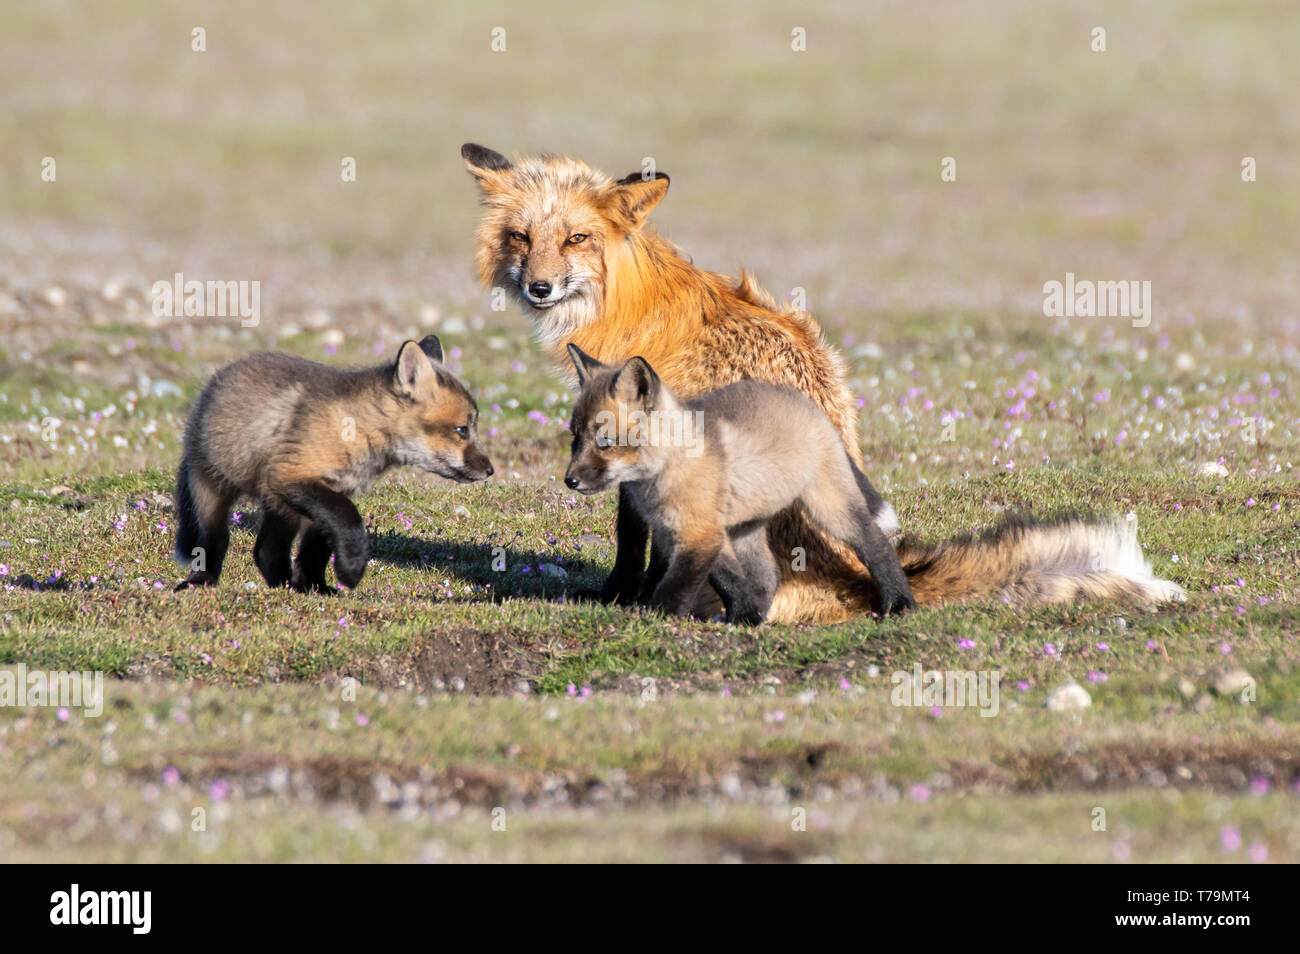 A red fox vixen with her two kits - Stock Image